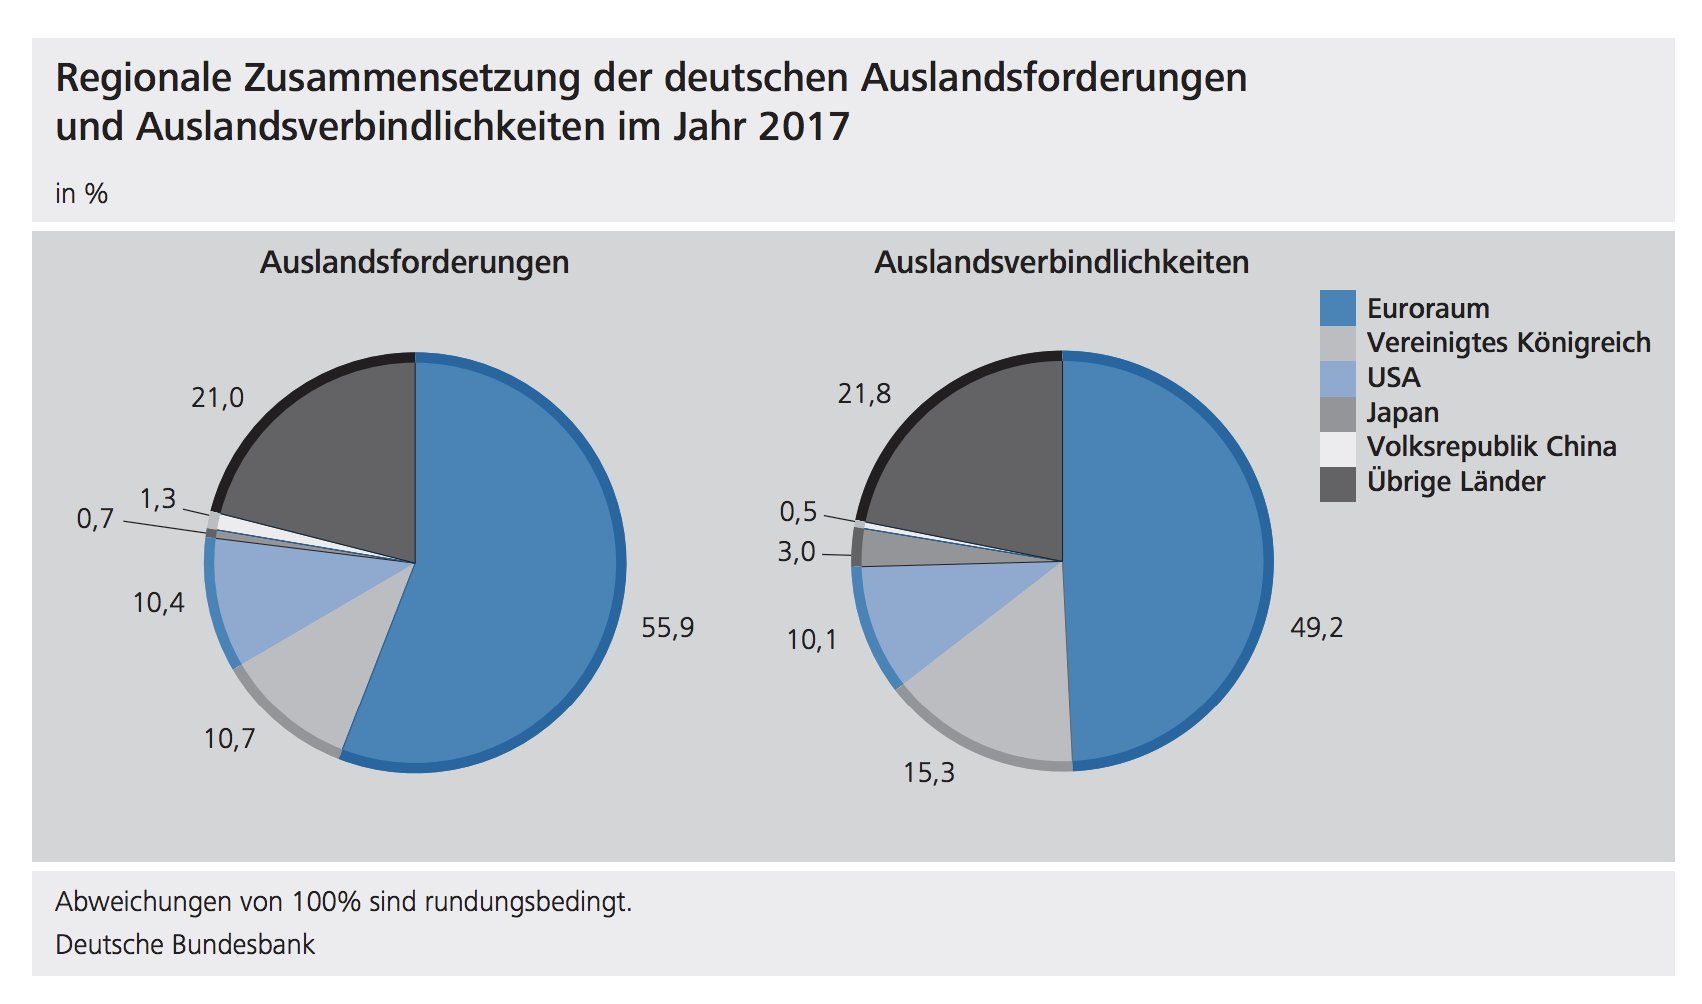 Western-centric: 77% of all German…